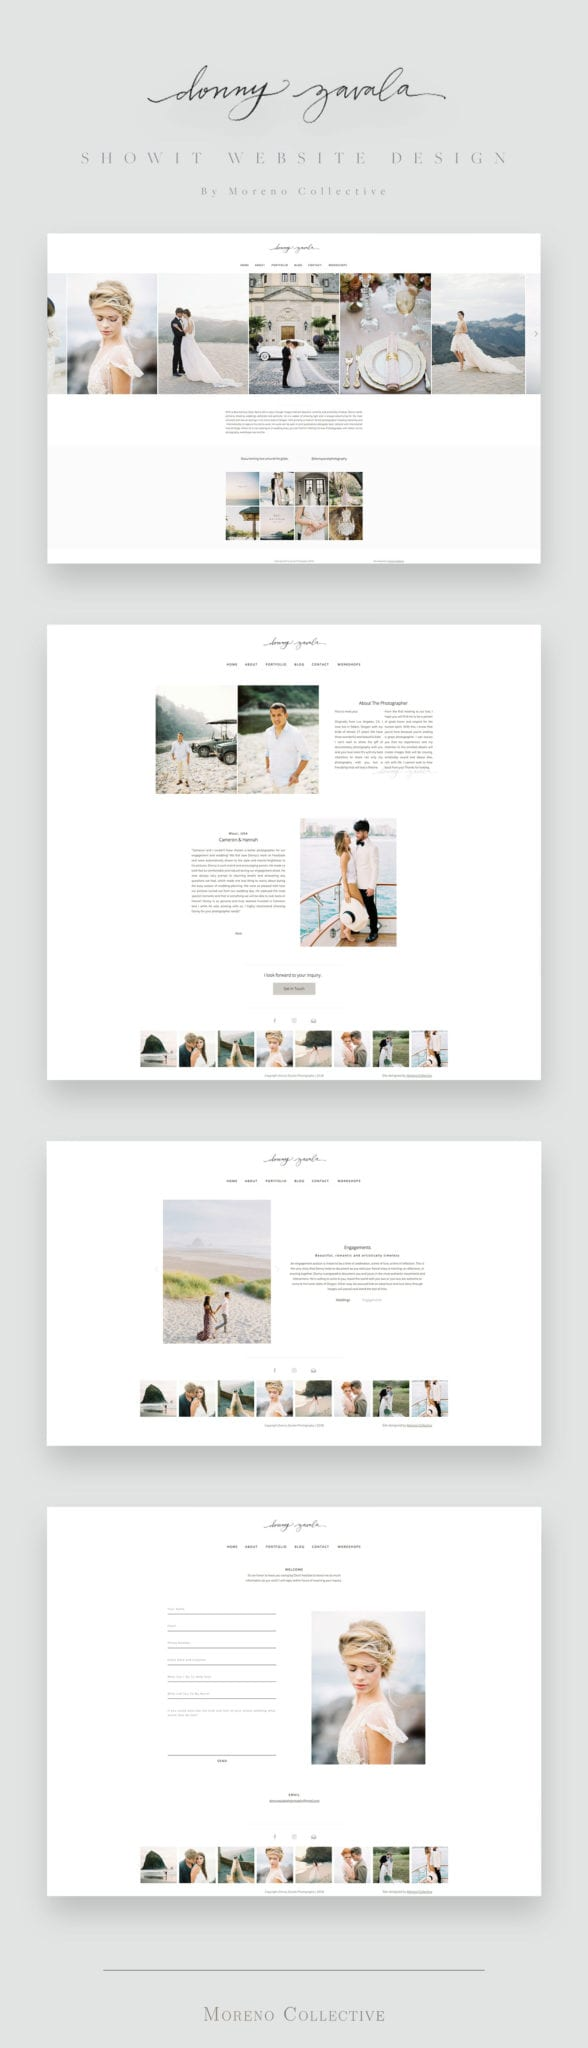 Showit Website Design for Donny Zavala Photography by Moreno Collective